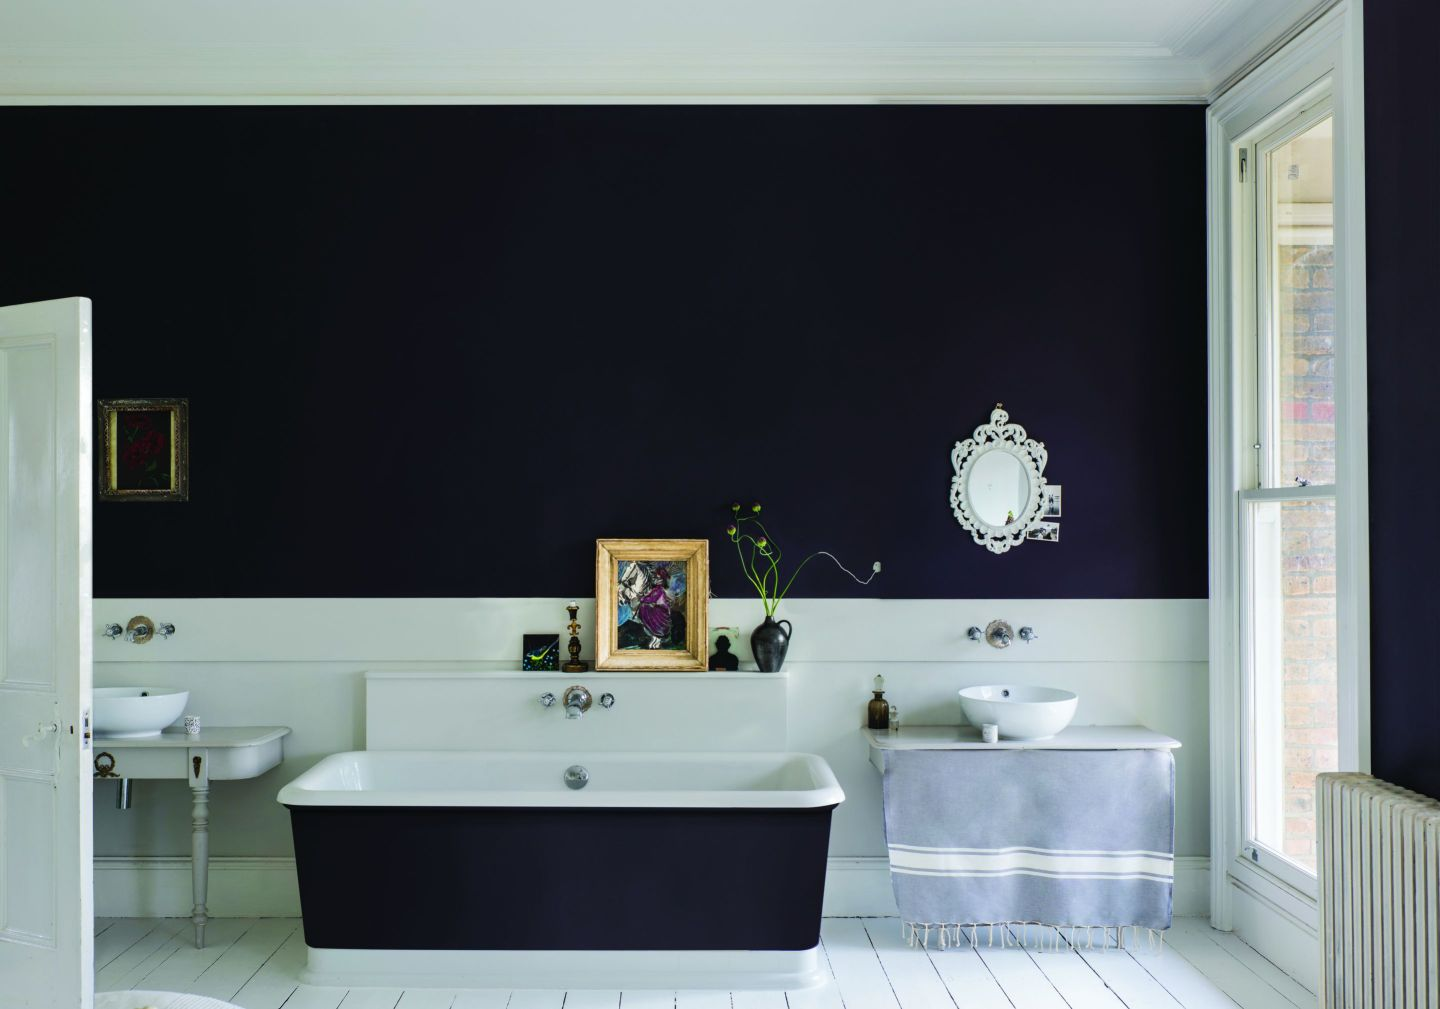 FarrowBall_2604406_PaeanBlackNo294.jpg-1440x1009 Paint Inspiration: 20 Colorful Rooms We Love